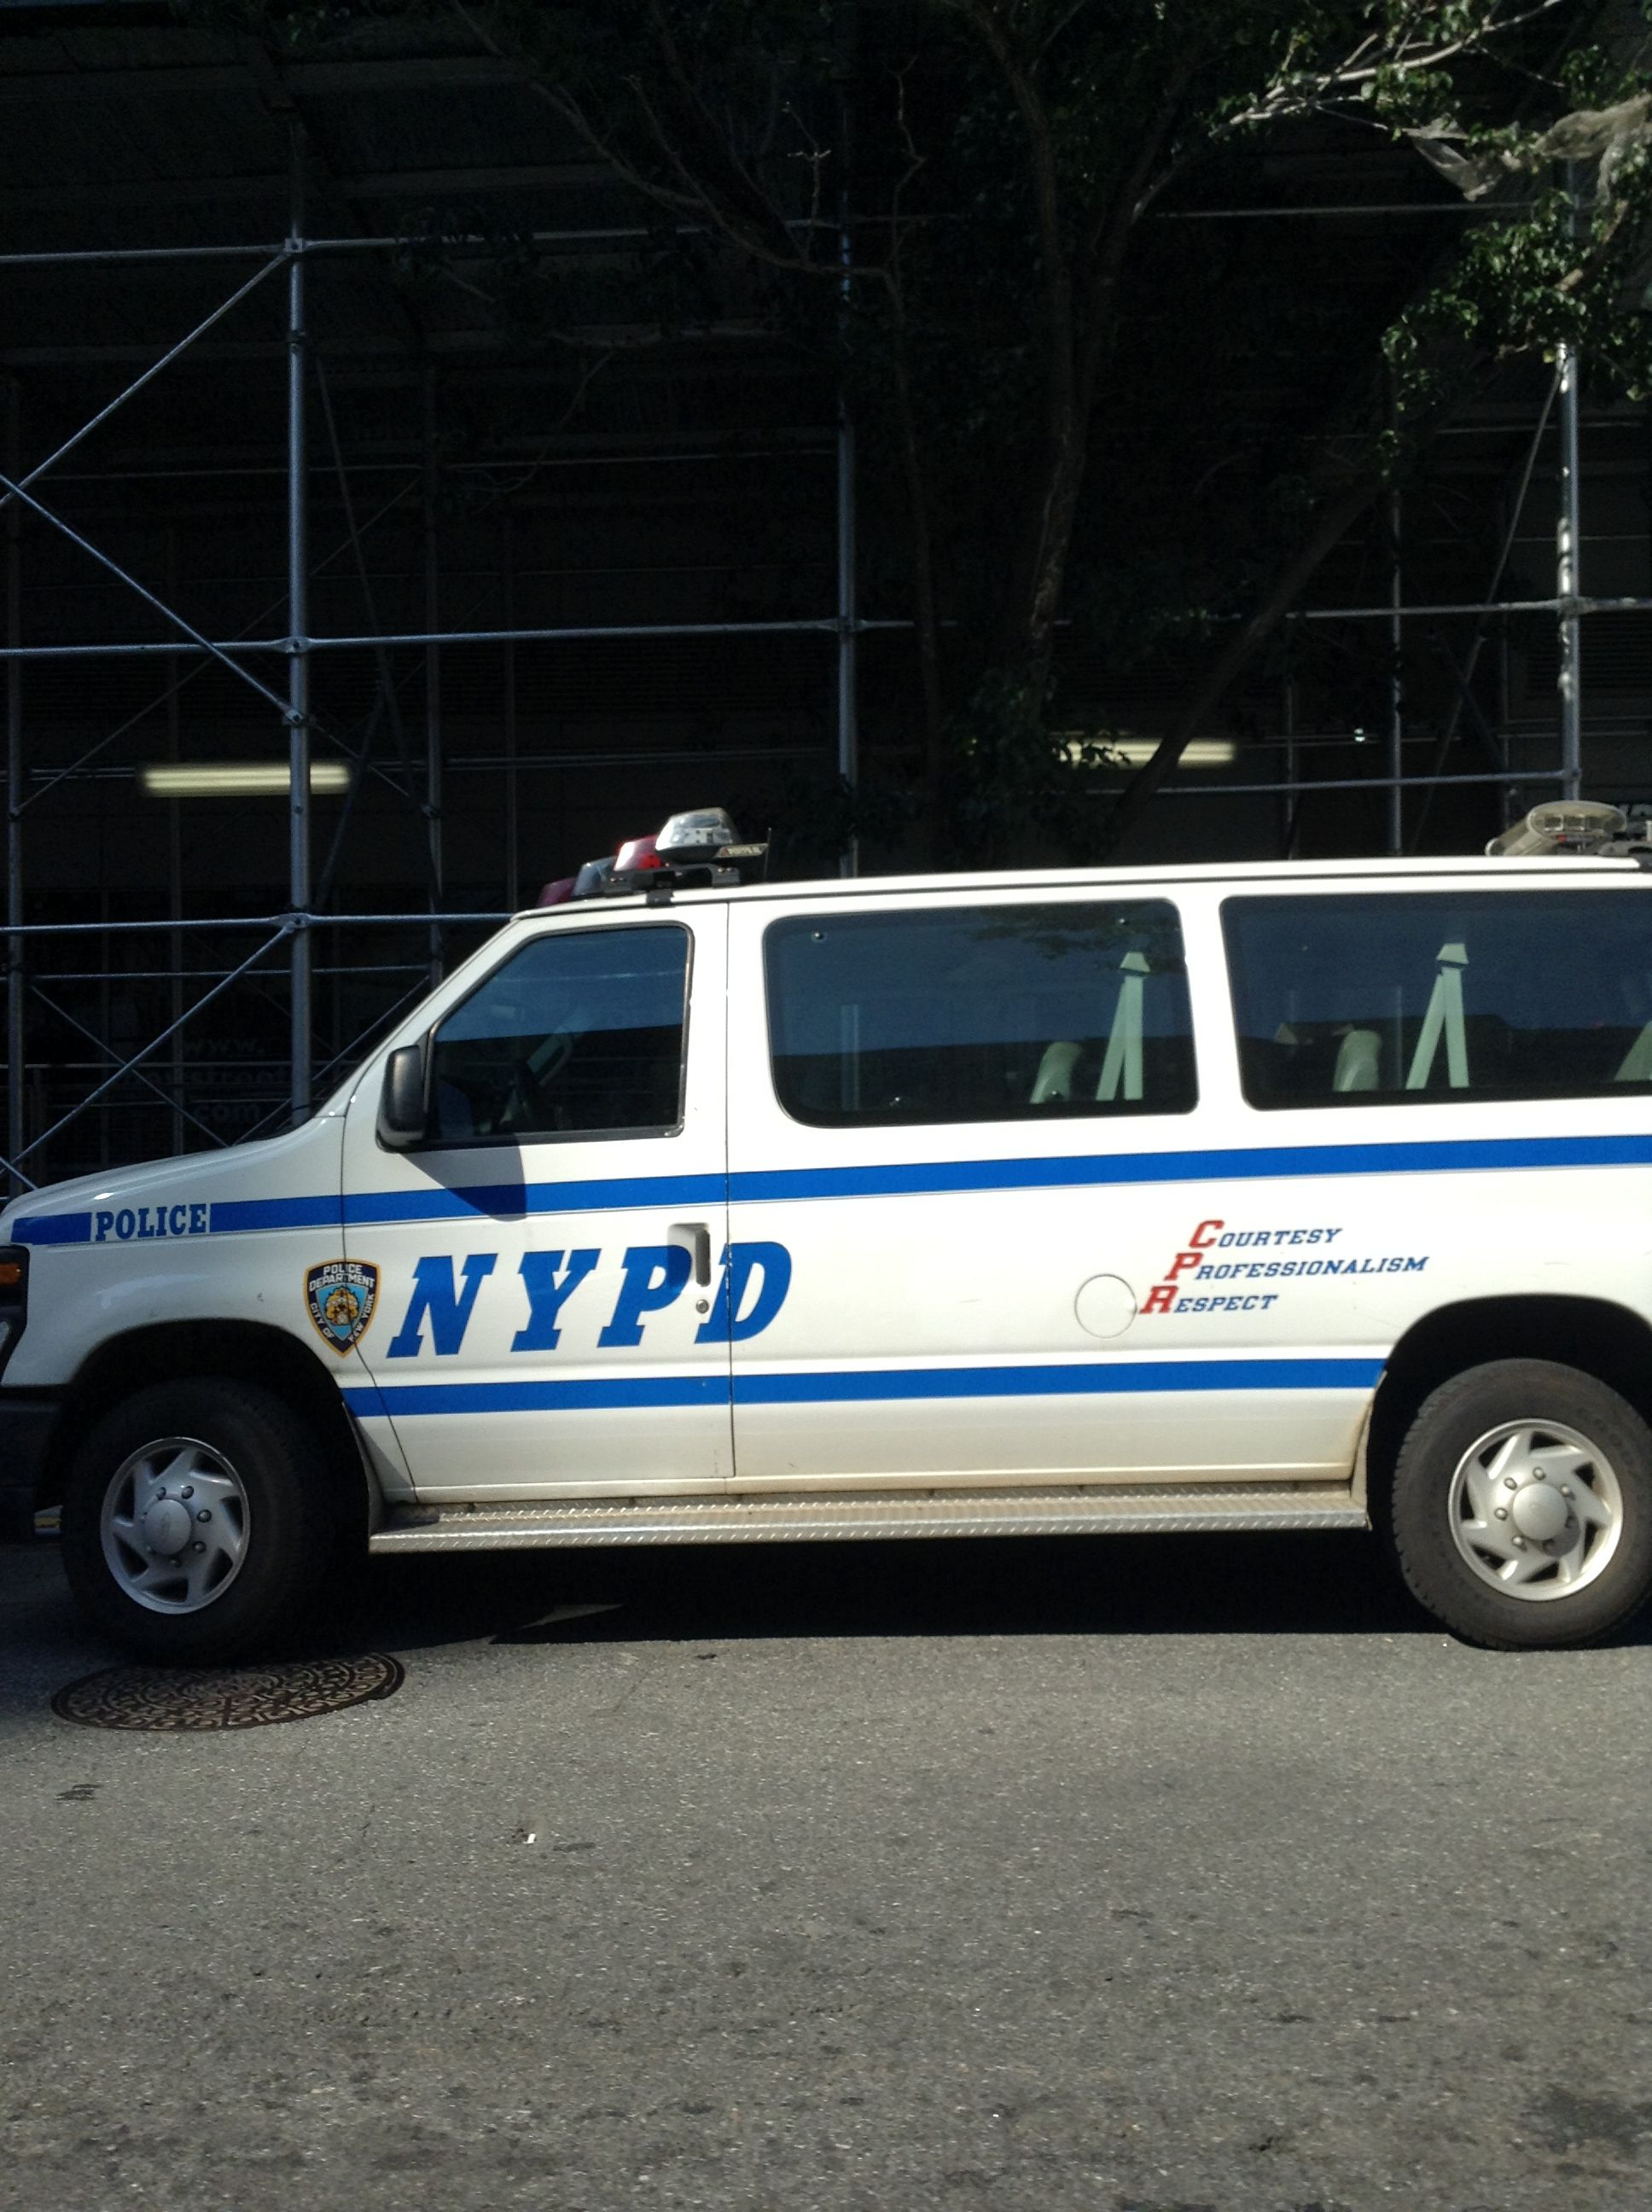 NYPD first vehicle I rode in when I got on da job